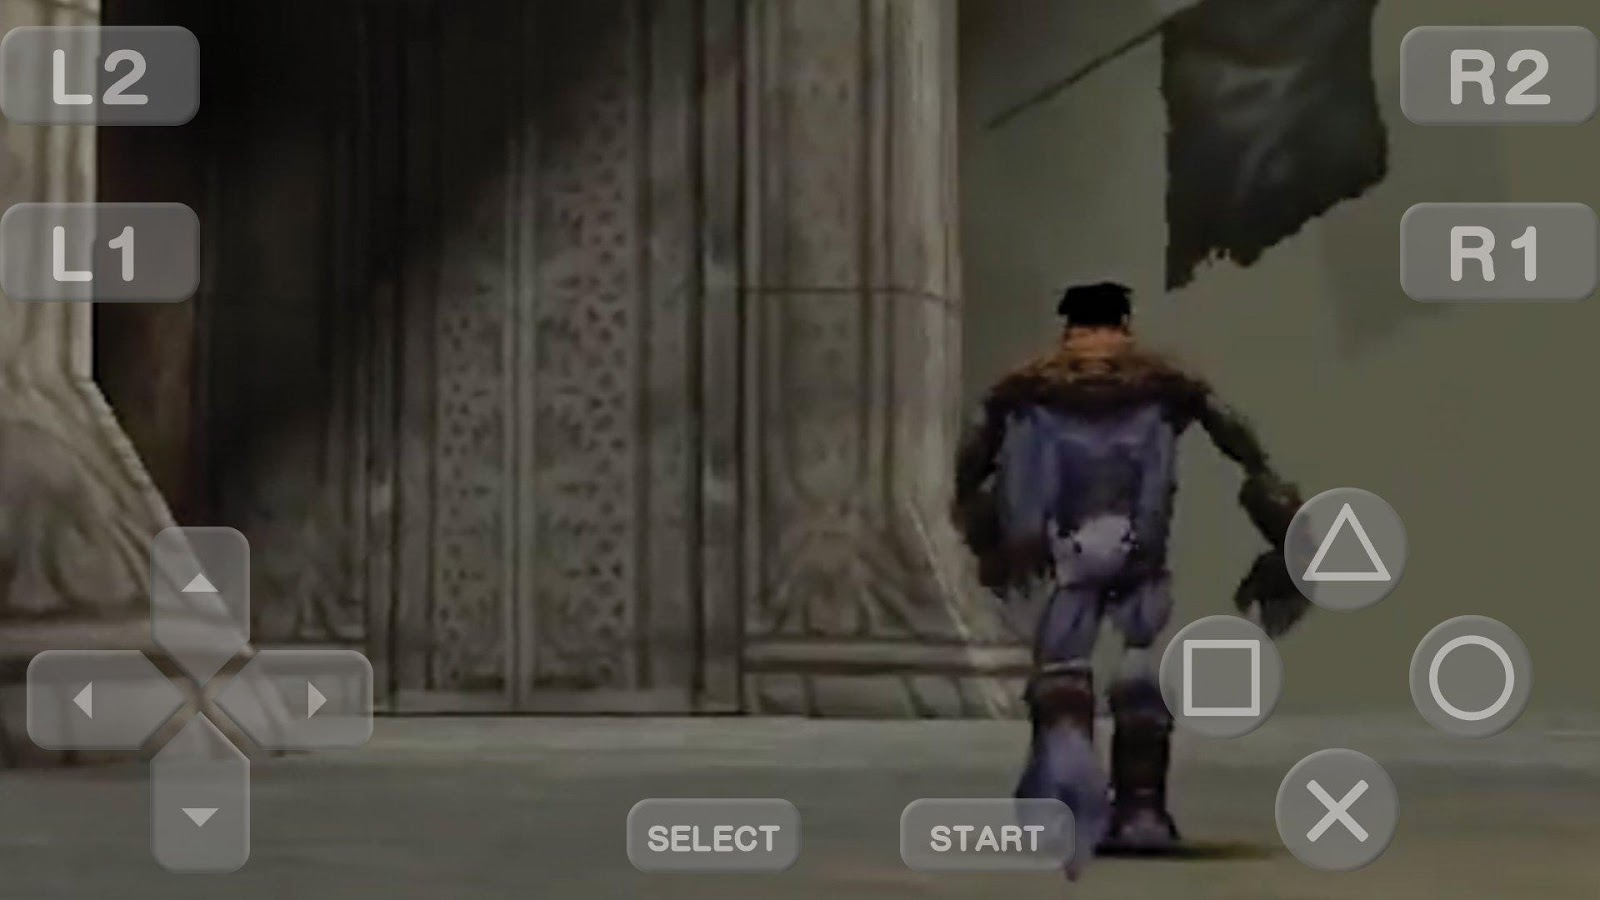 Go PSX Emulator - Free 1 0 APK Download - Android Arcade Games